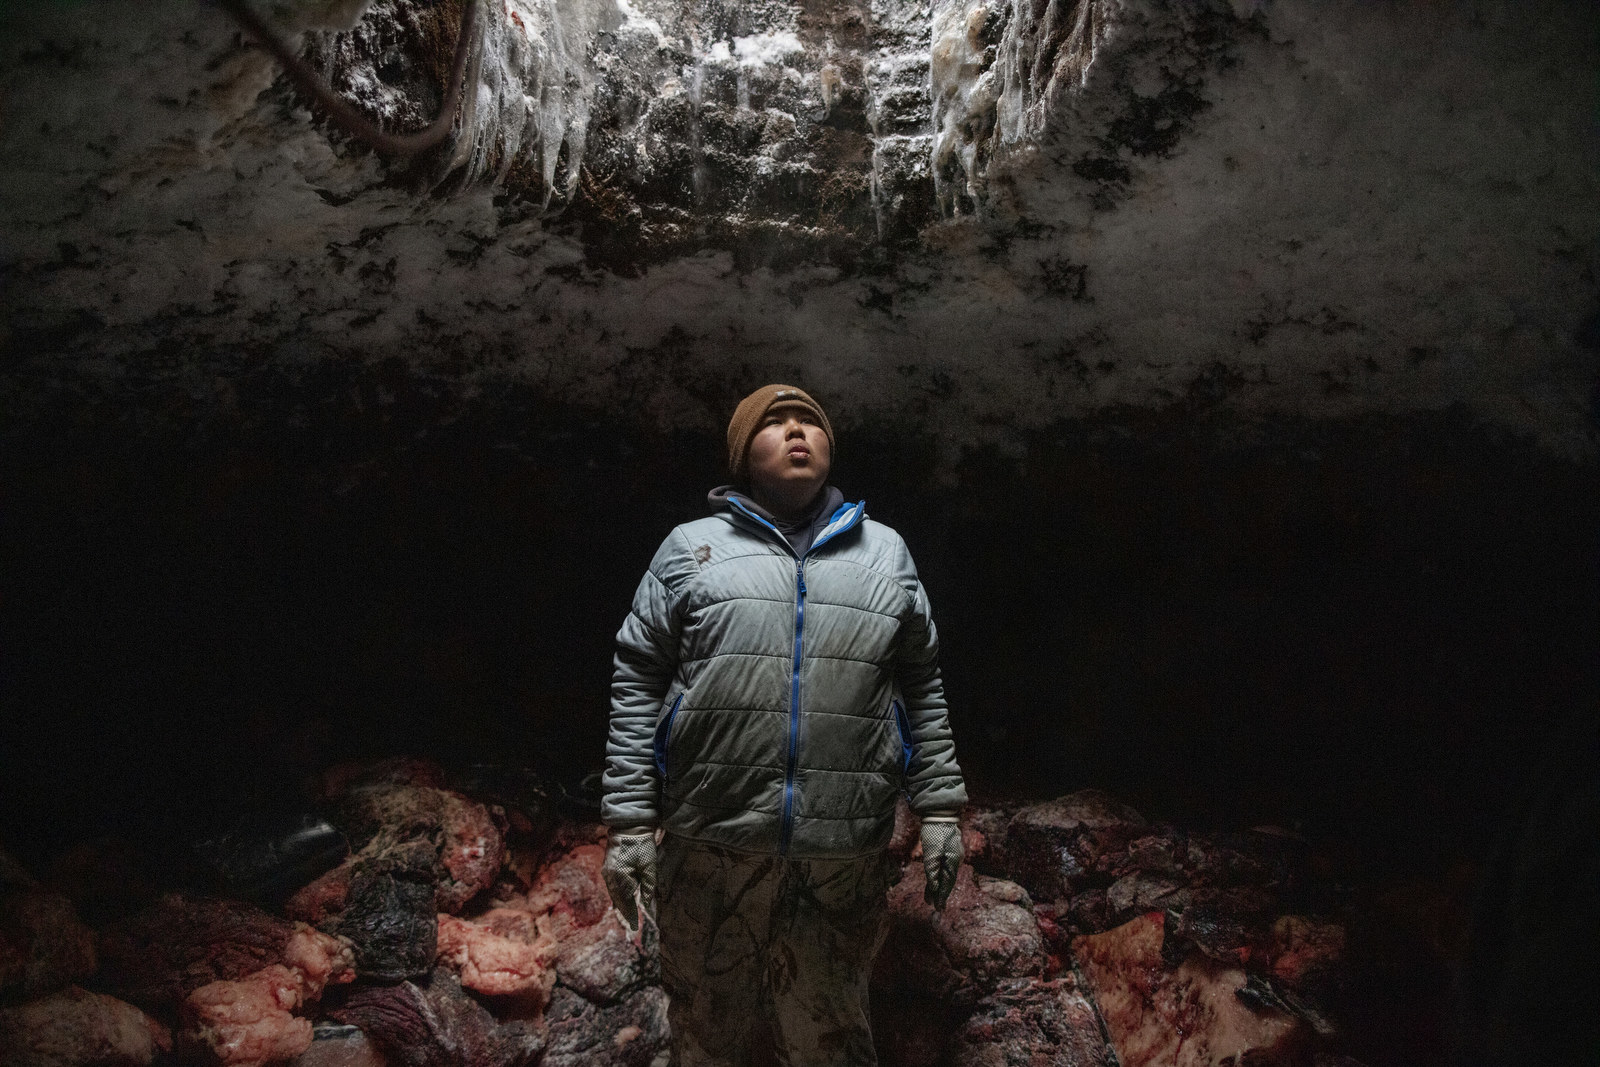 A young boy in work gloves stands in a dark ice cavern surrounded by bloody whale carcasses